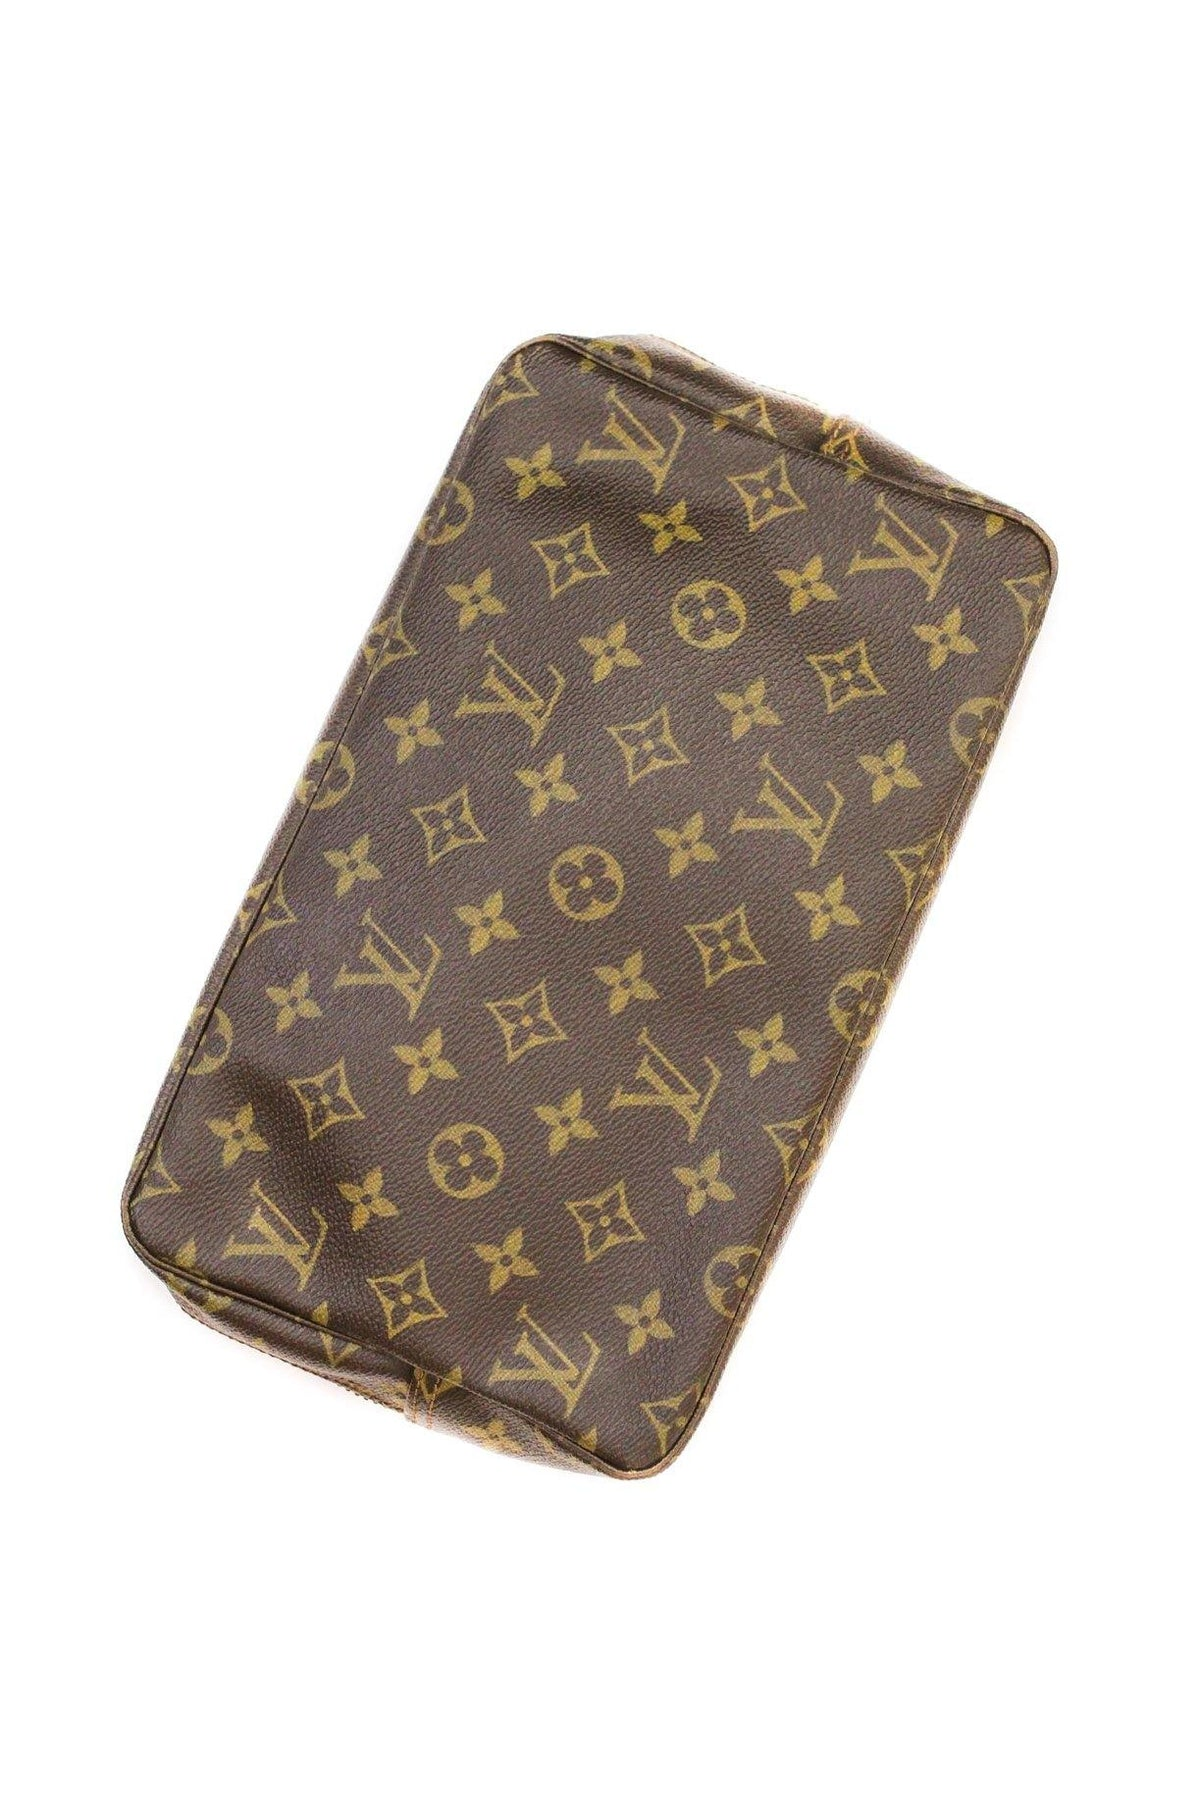 Vintage Louis Vuitton Clutch from Sweet & Spark.